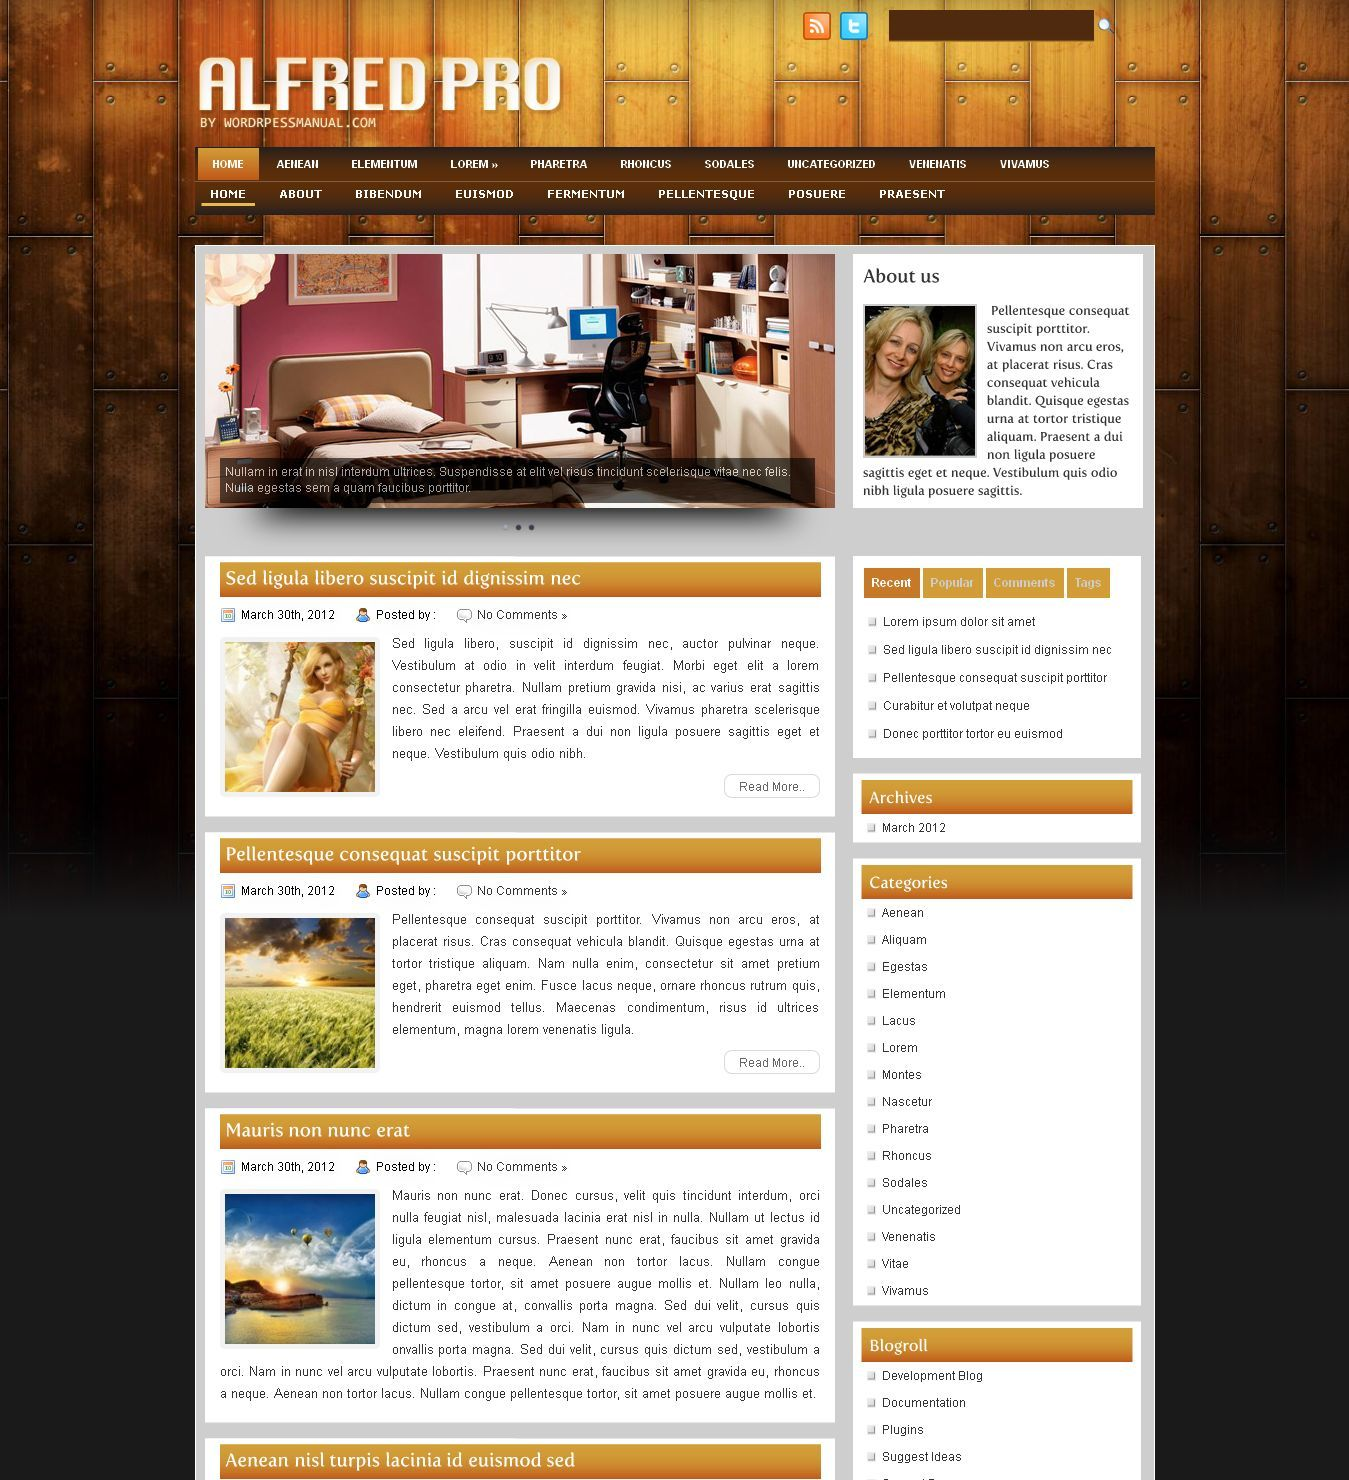 http://www.victoo.net/alfred-free-wordpress-template-332.html